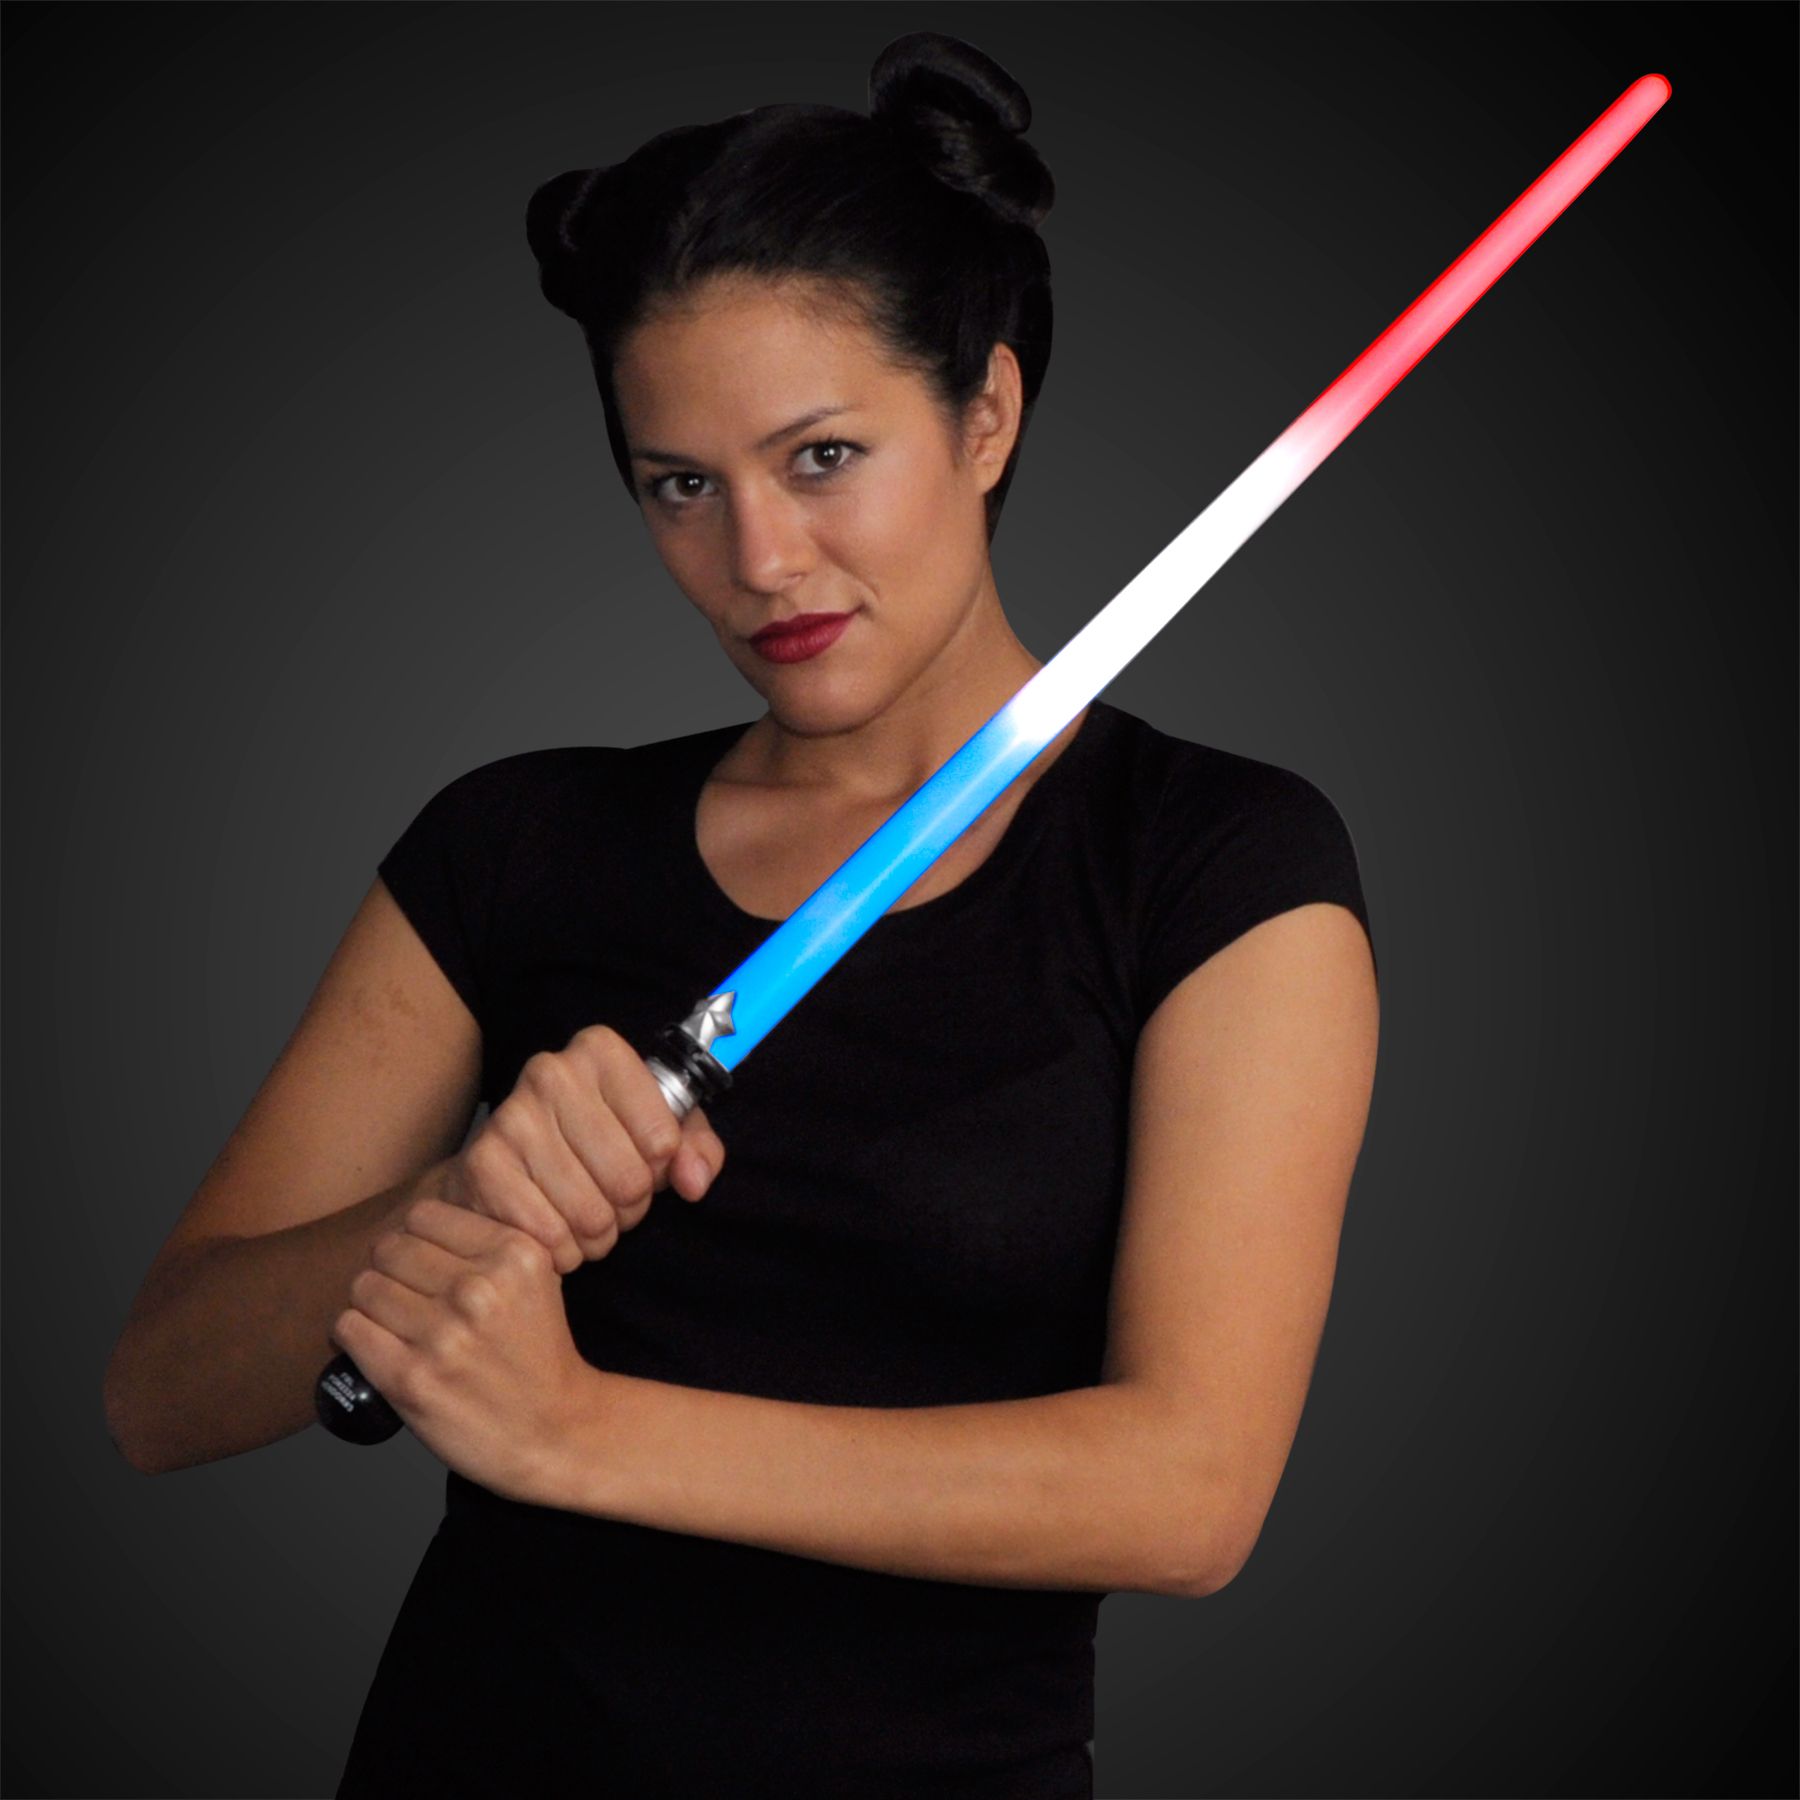 Model displaying the Light Up Red White & Blue American Sword Saber